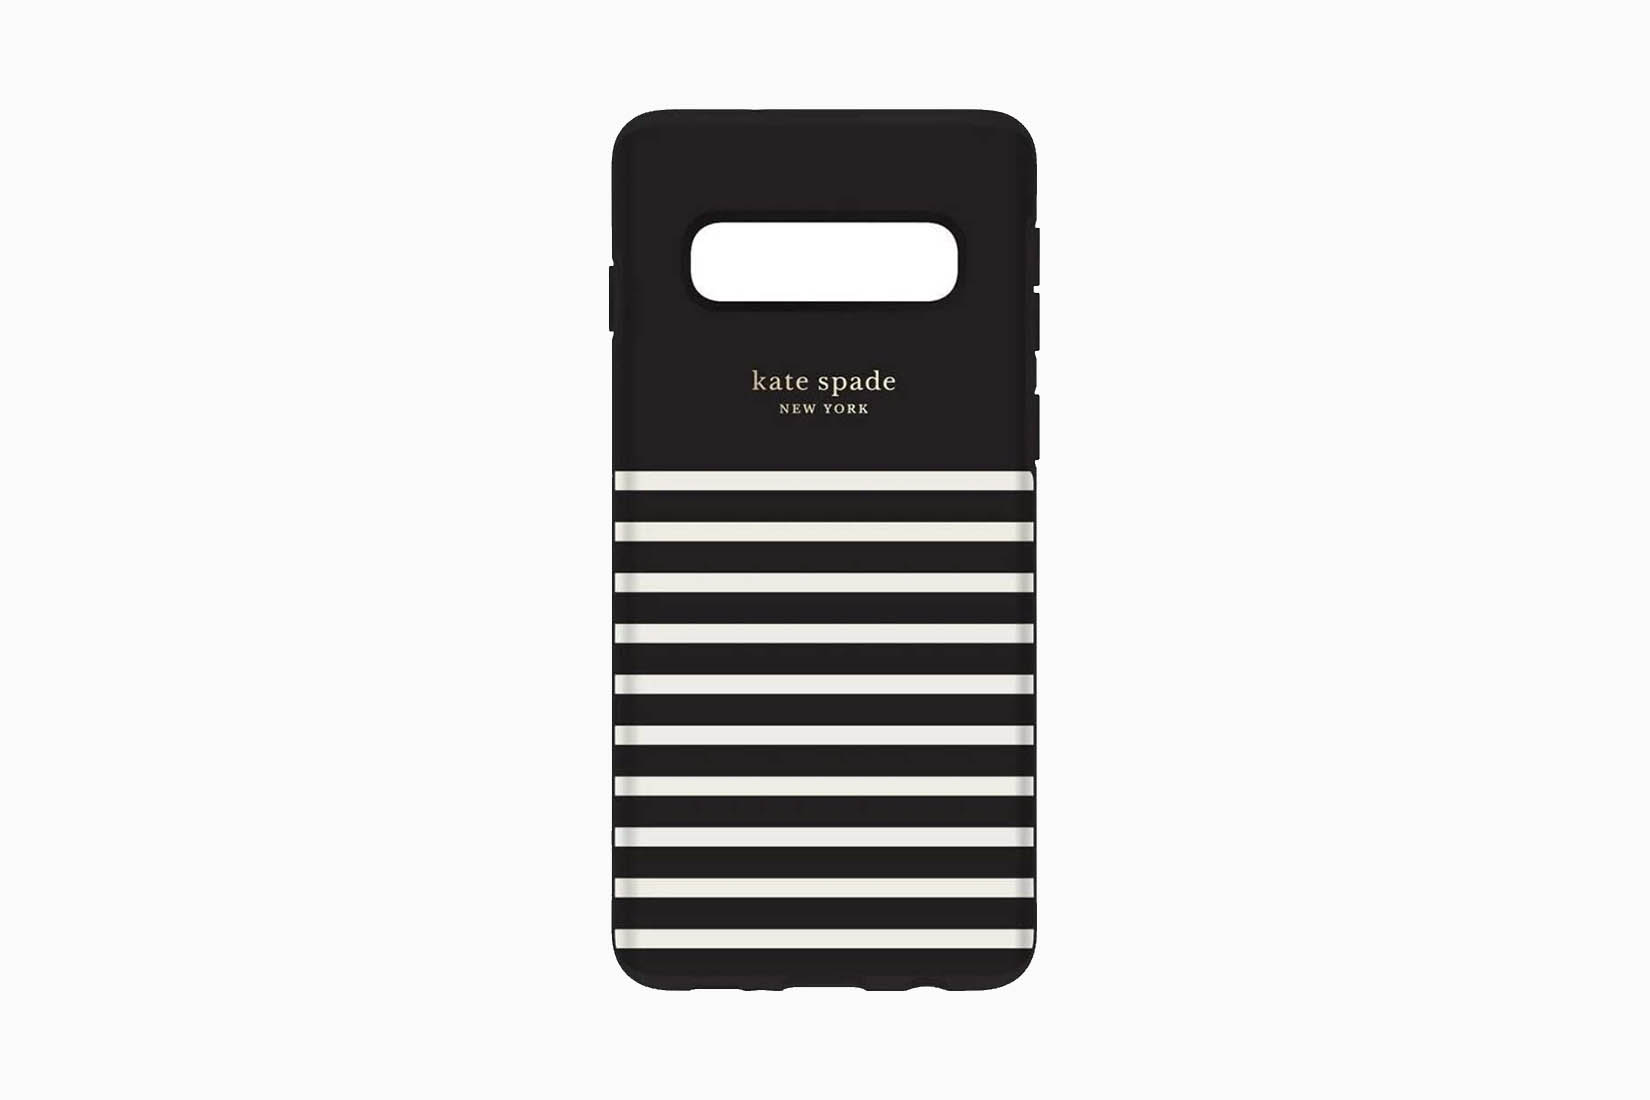 Best Samsung Case Kate Spade Review - Luxe Digital